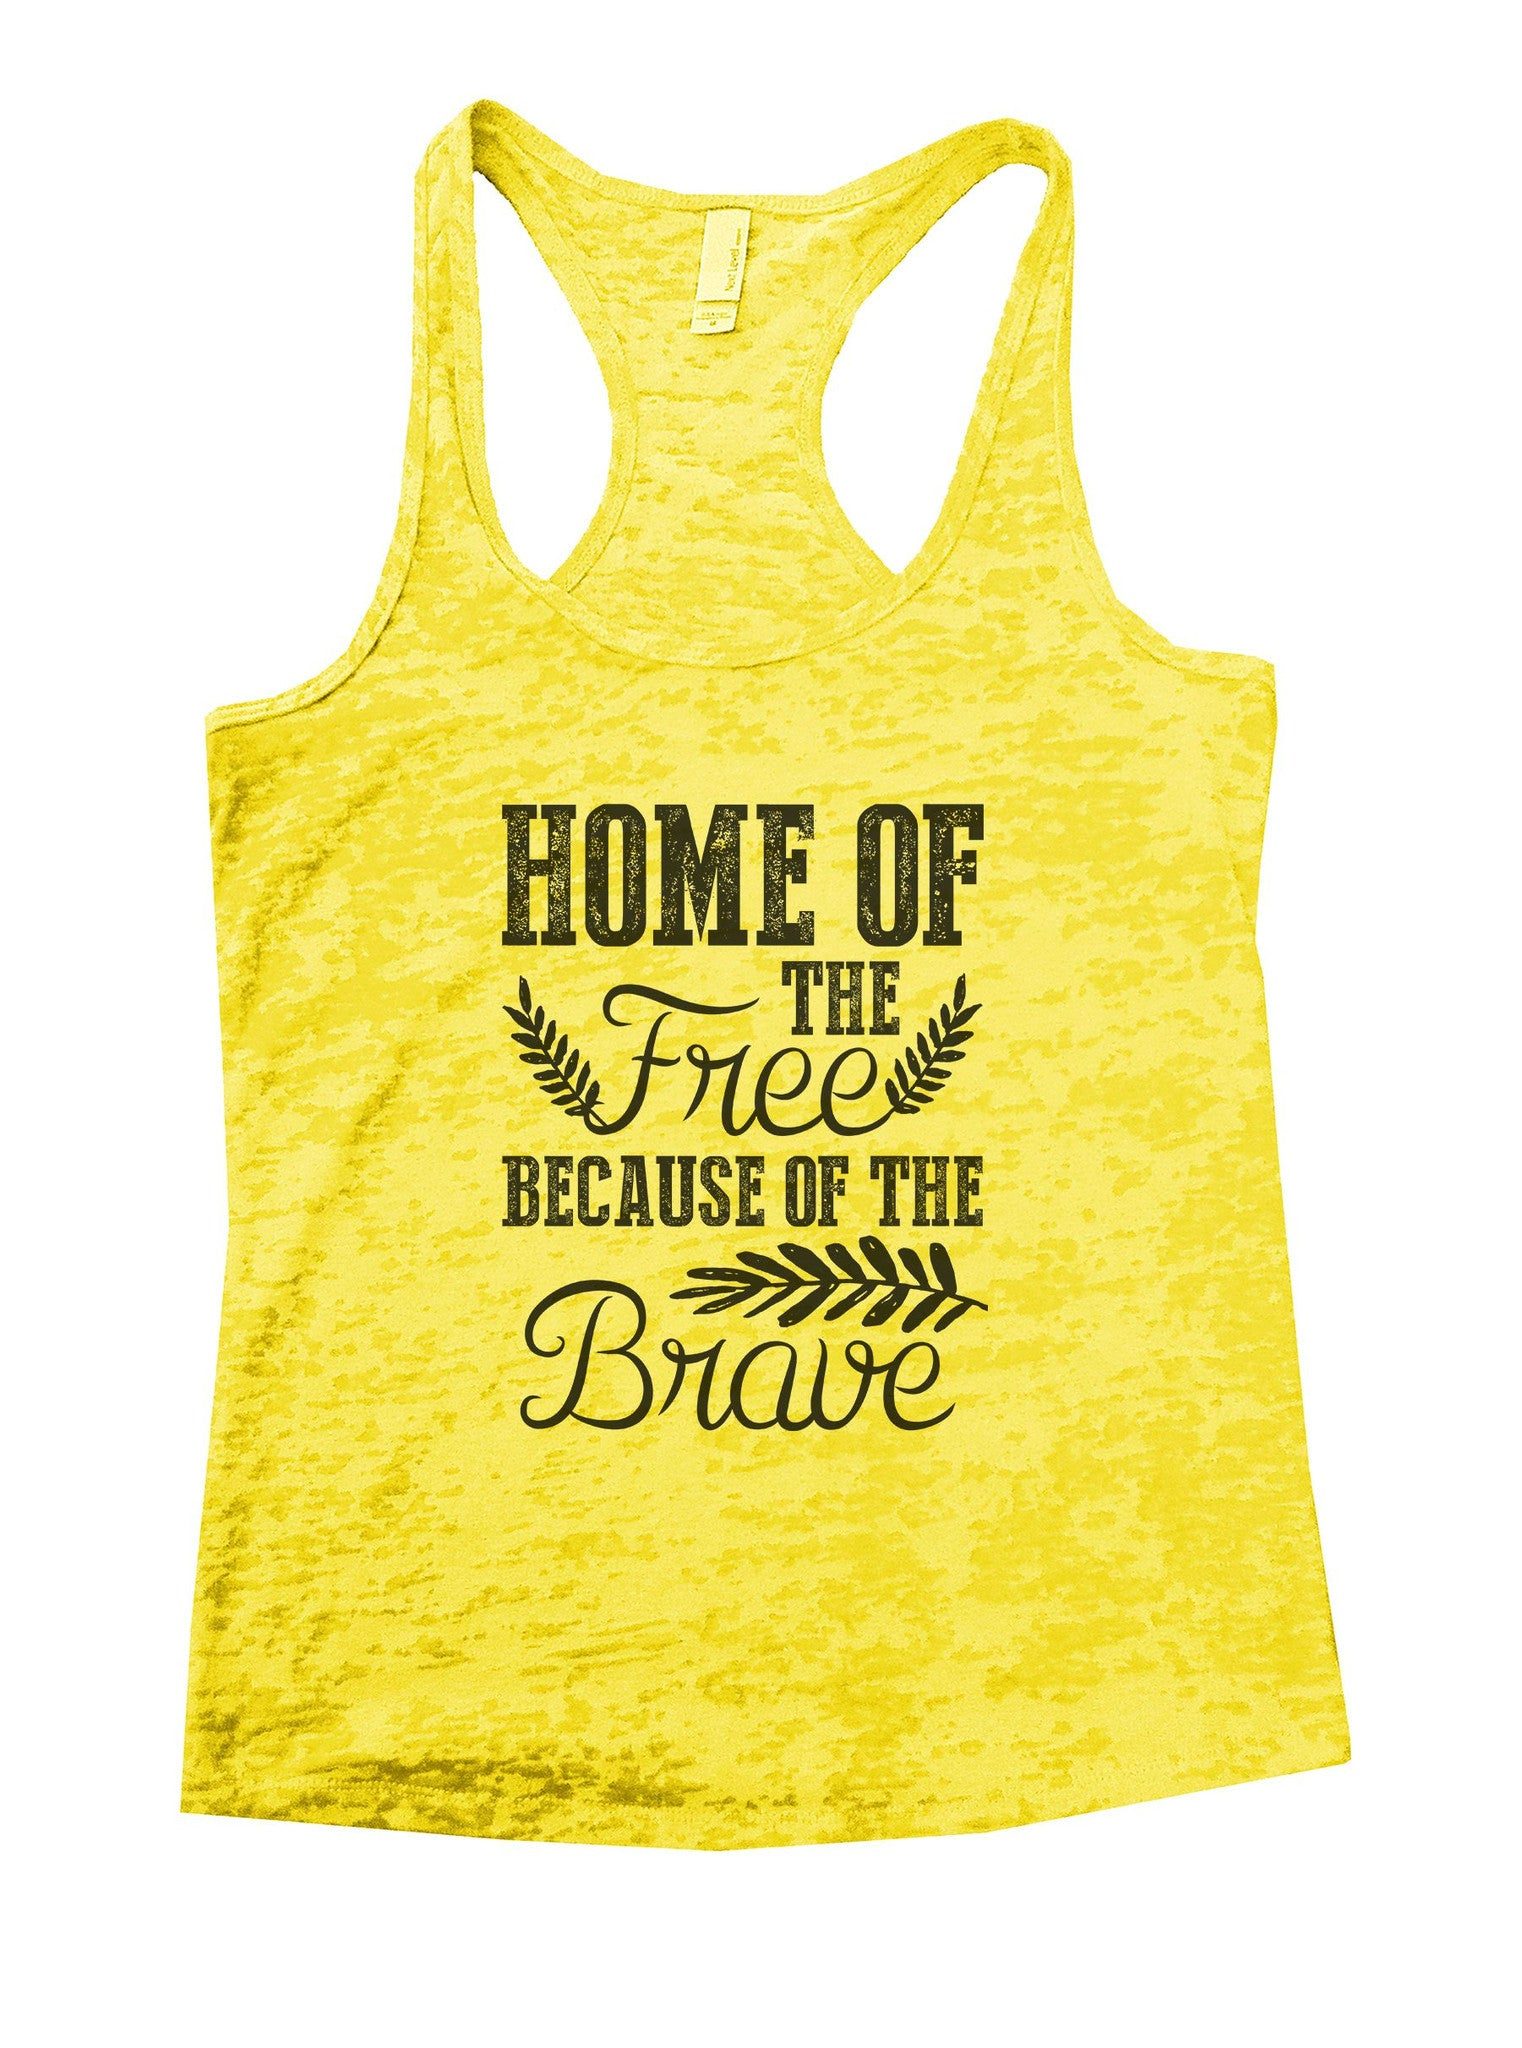 Home Of The Free Because Of The Brave Burnout Tank Top By BurnoutTankTops.com - 978 - Funny Shirts Tank Tops Burnouts and Triblends  - 7